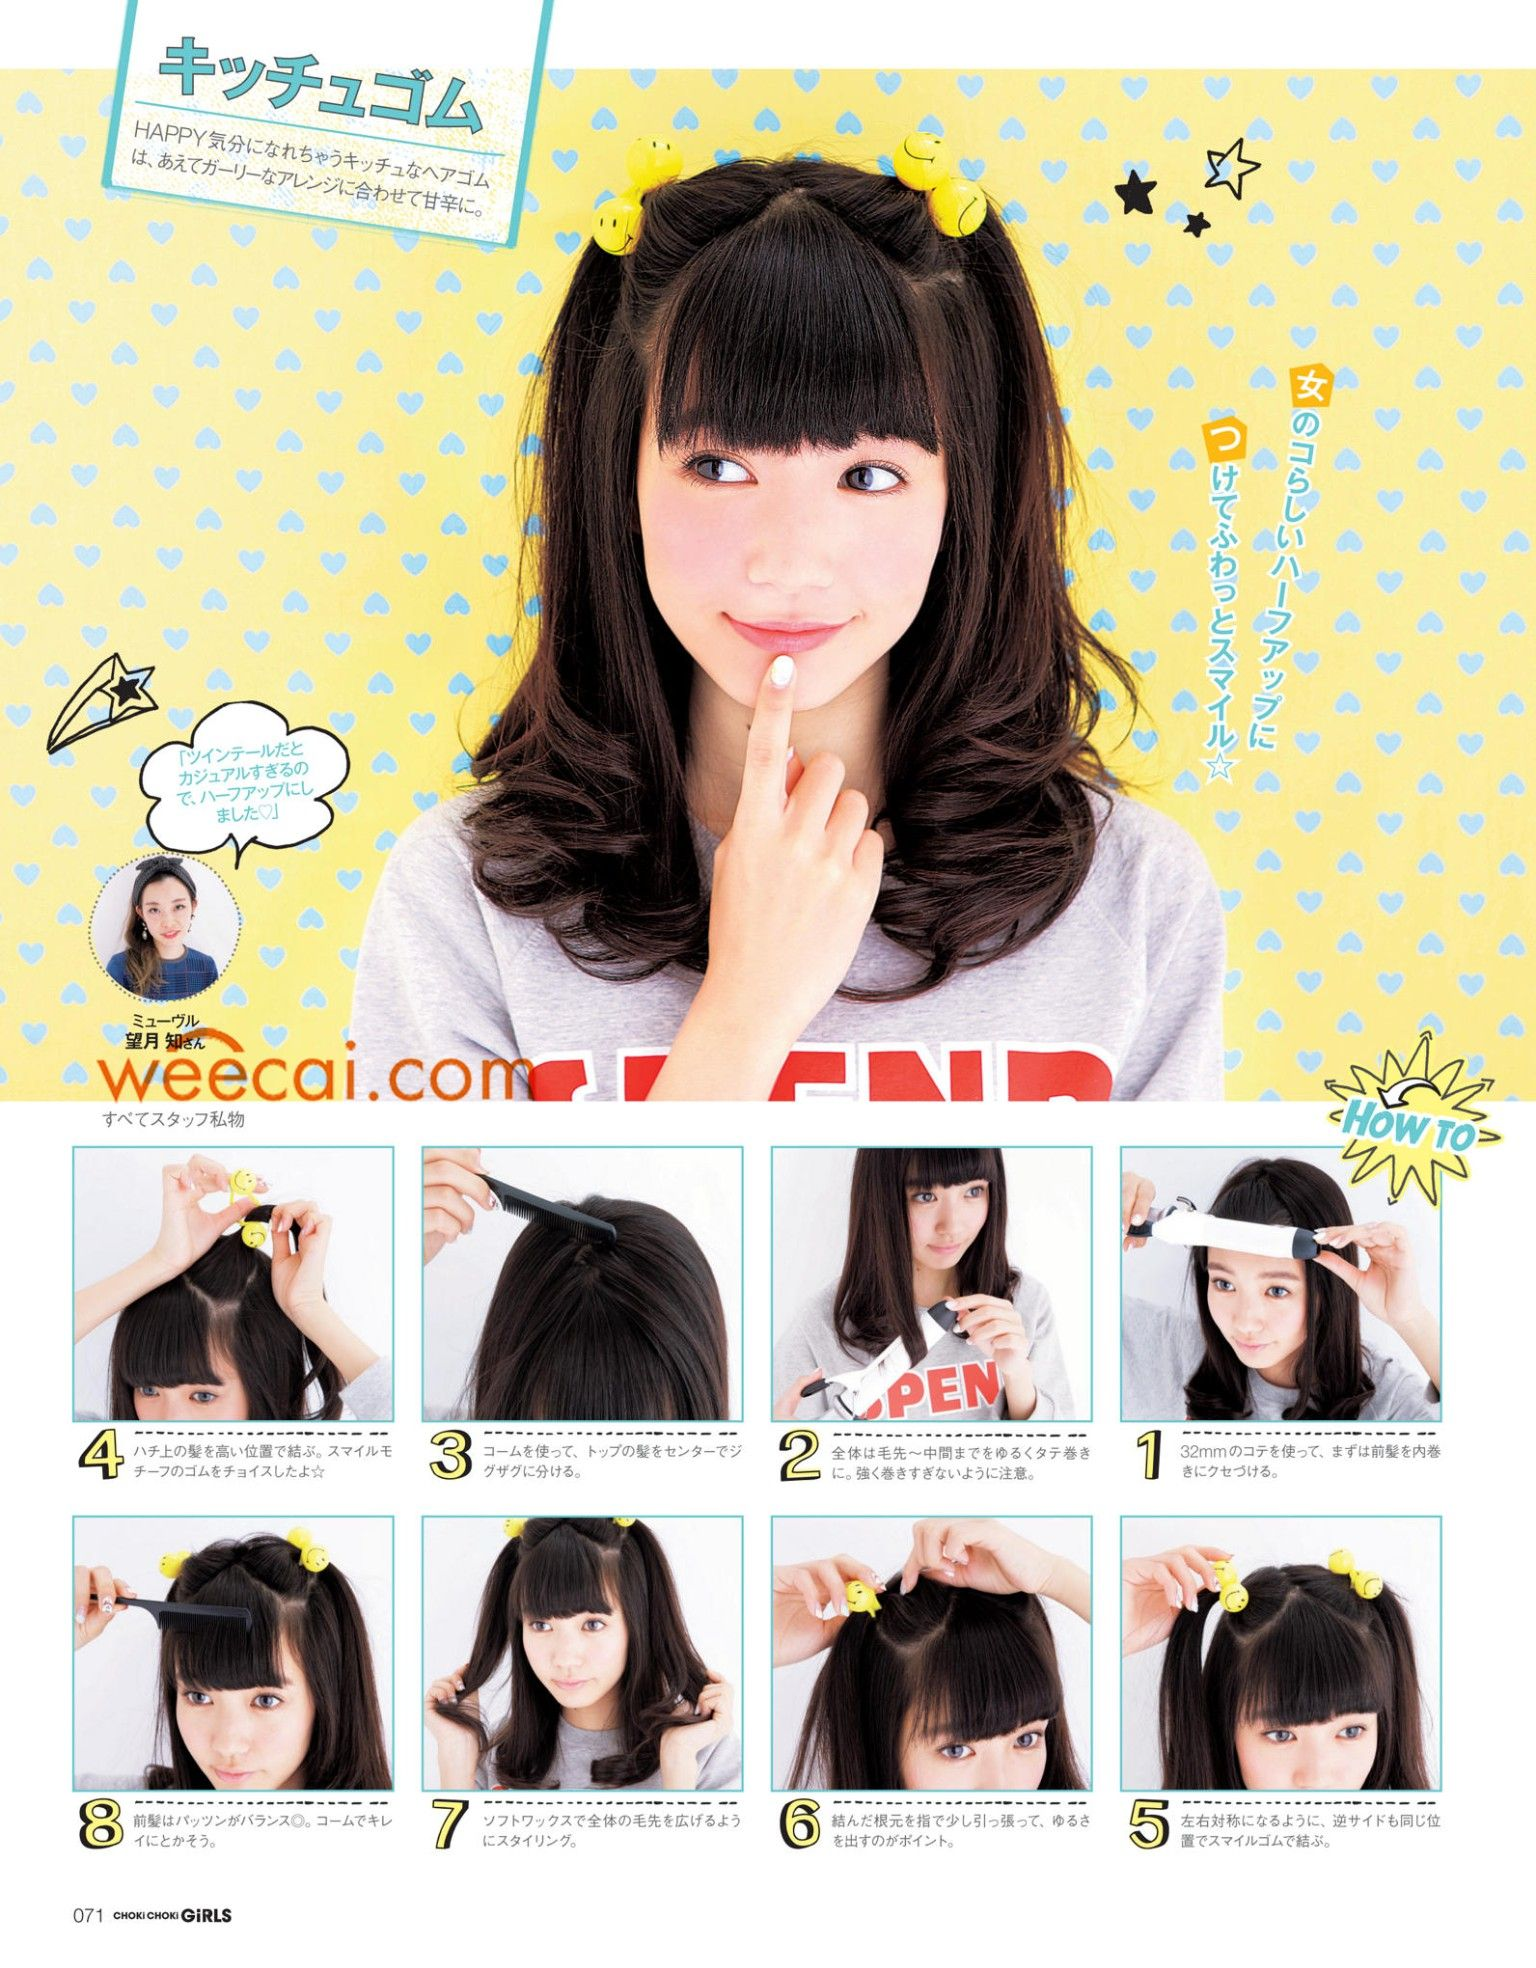 Pin By Elaine On Hair Inspiration In 2019 Kawaii